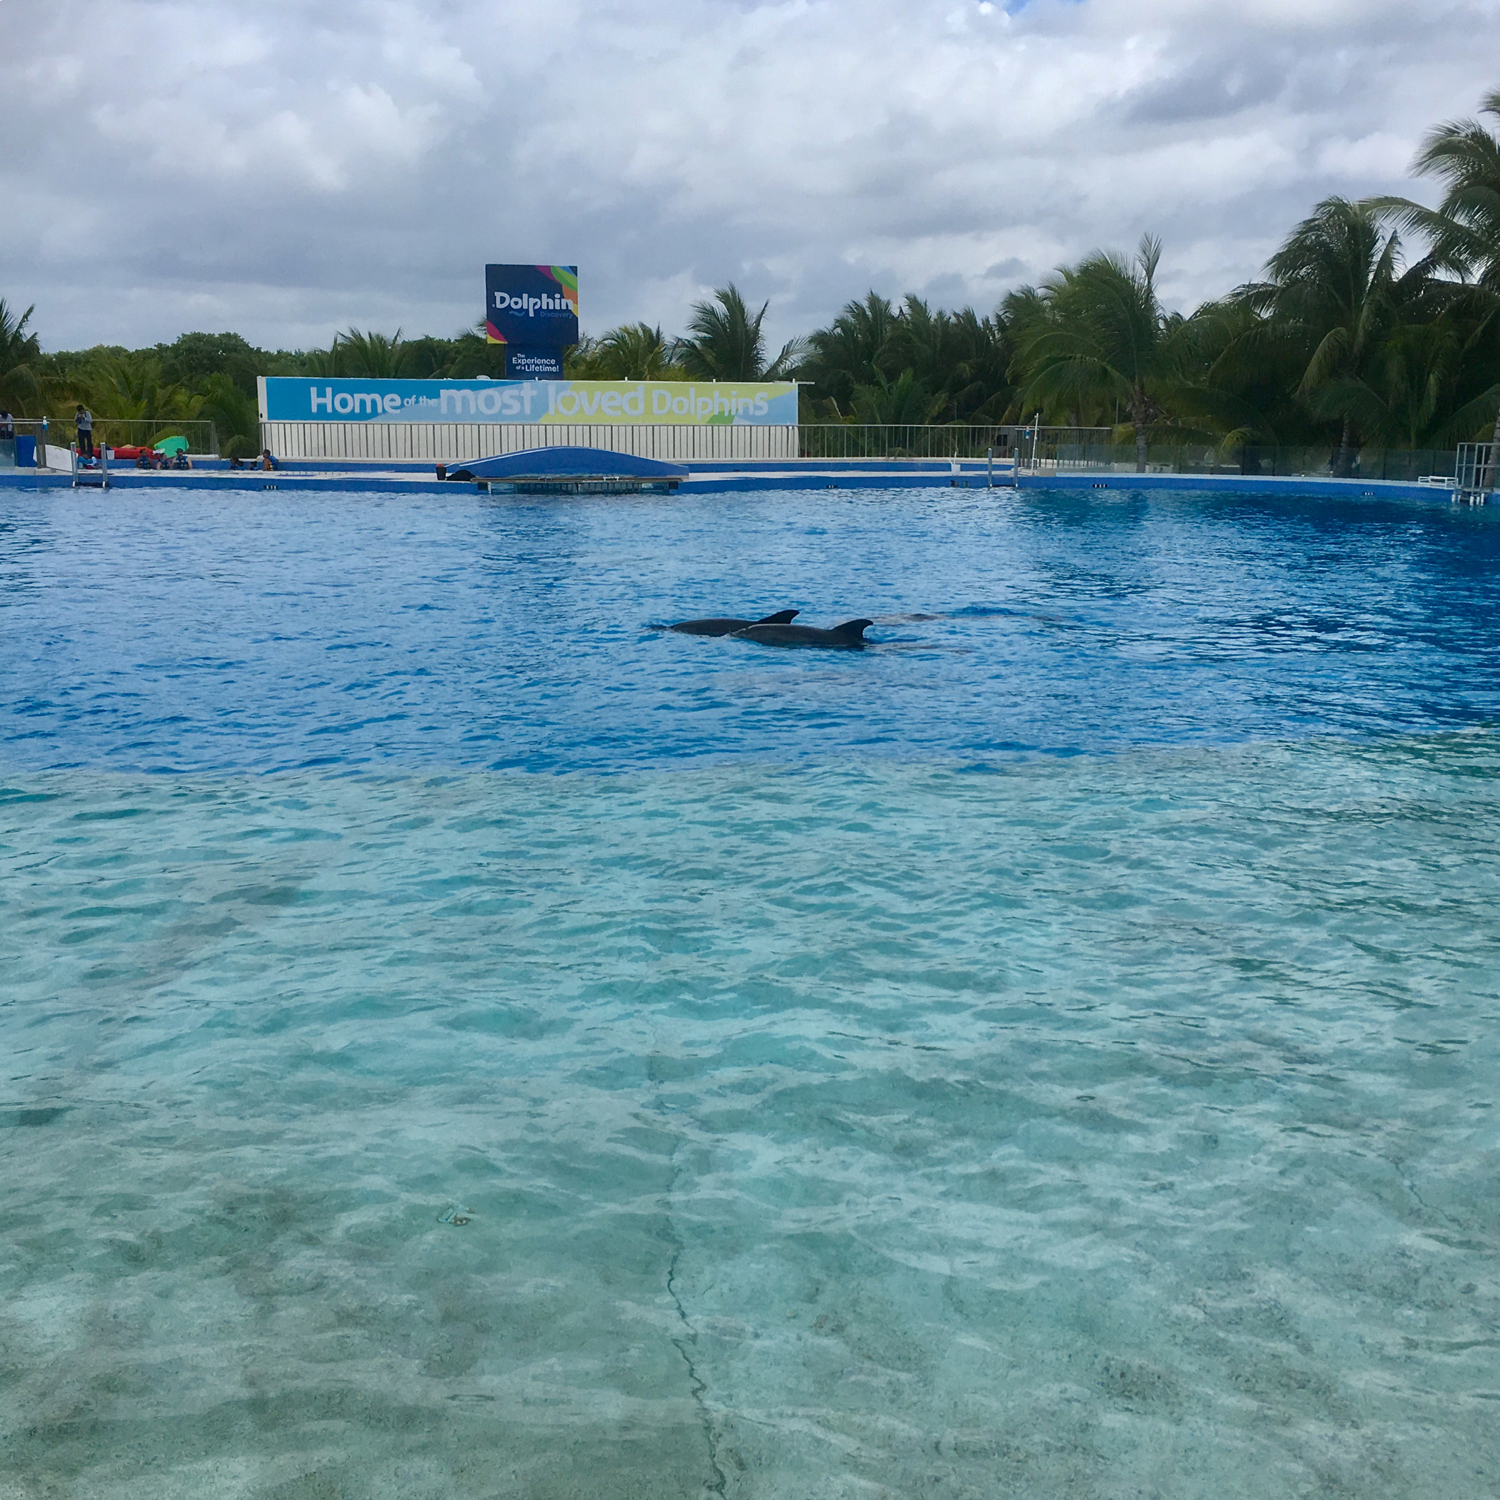 Swimming with dolphins (in the pool).